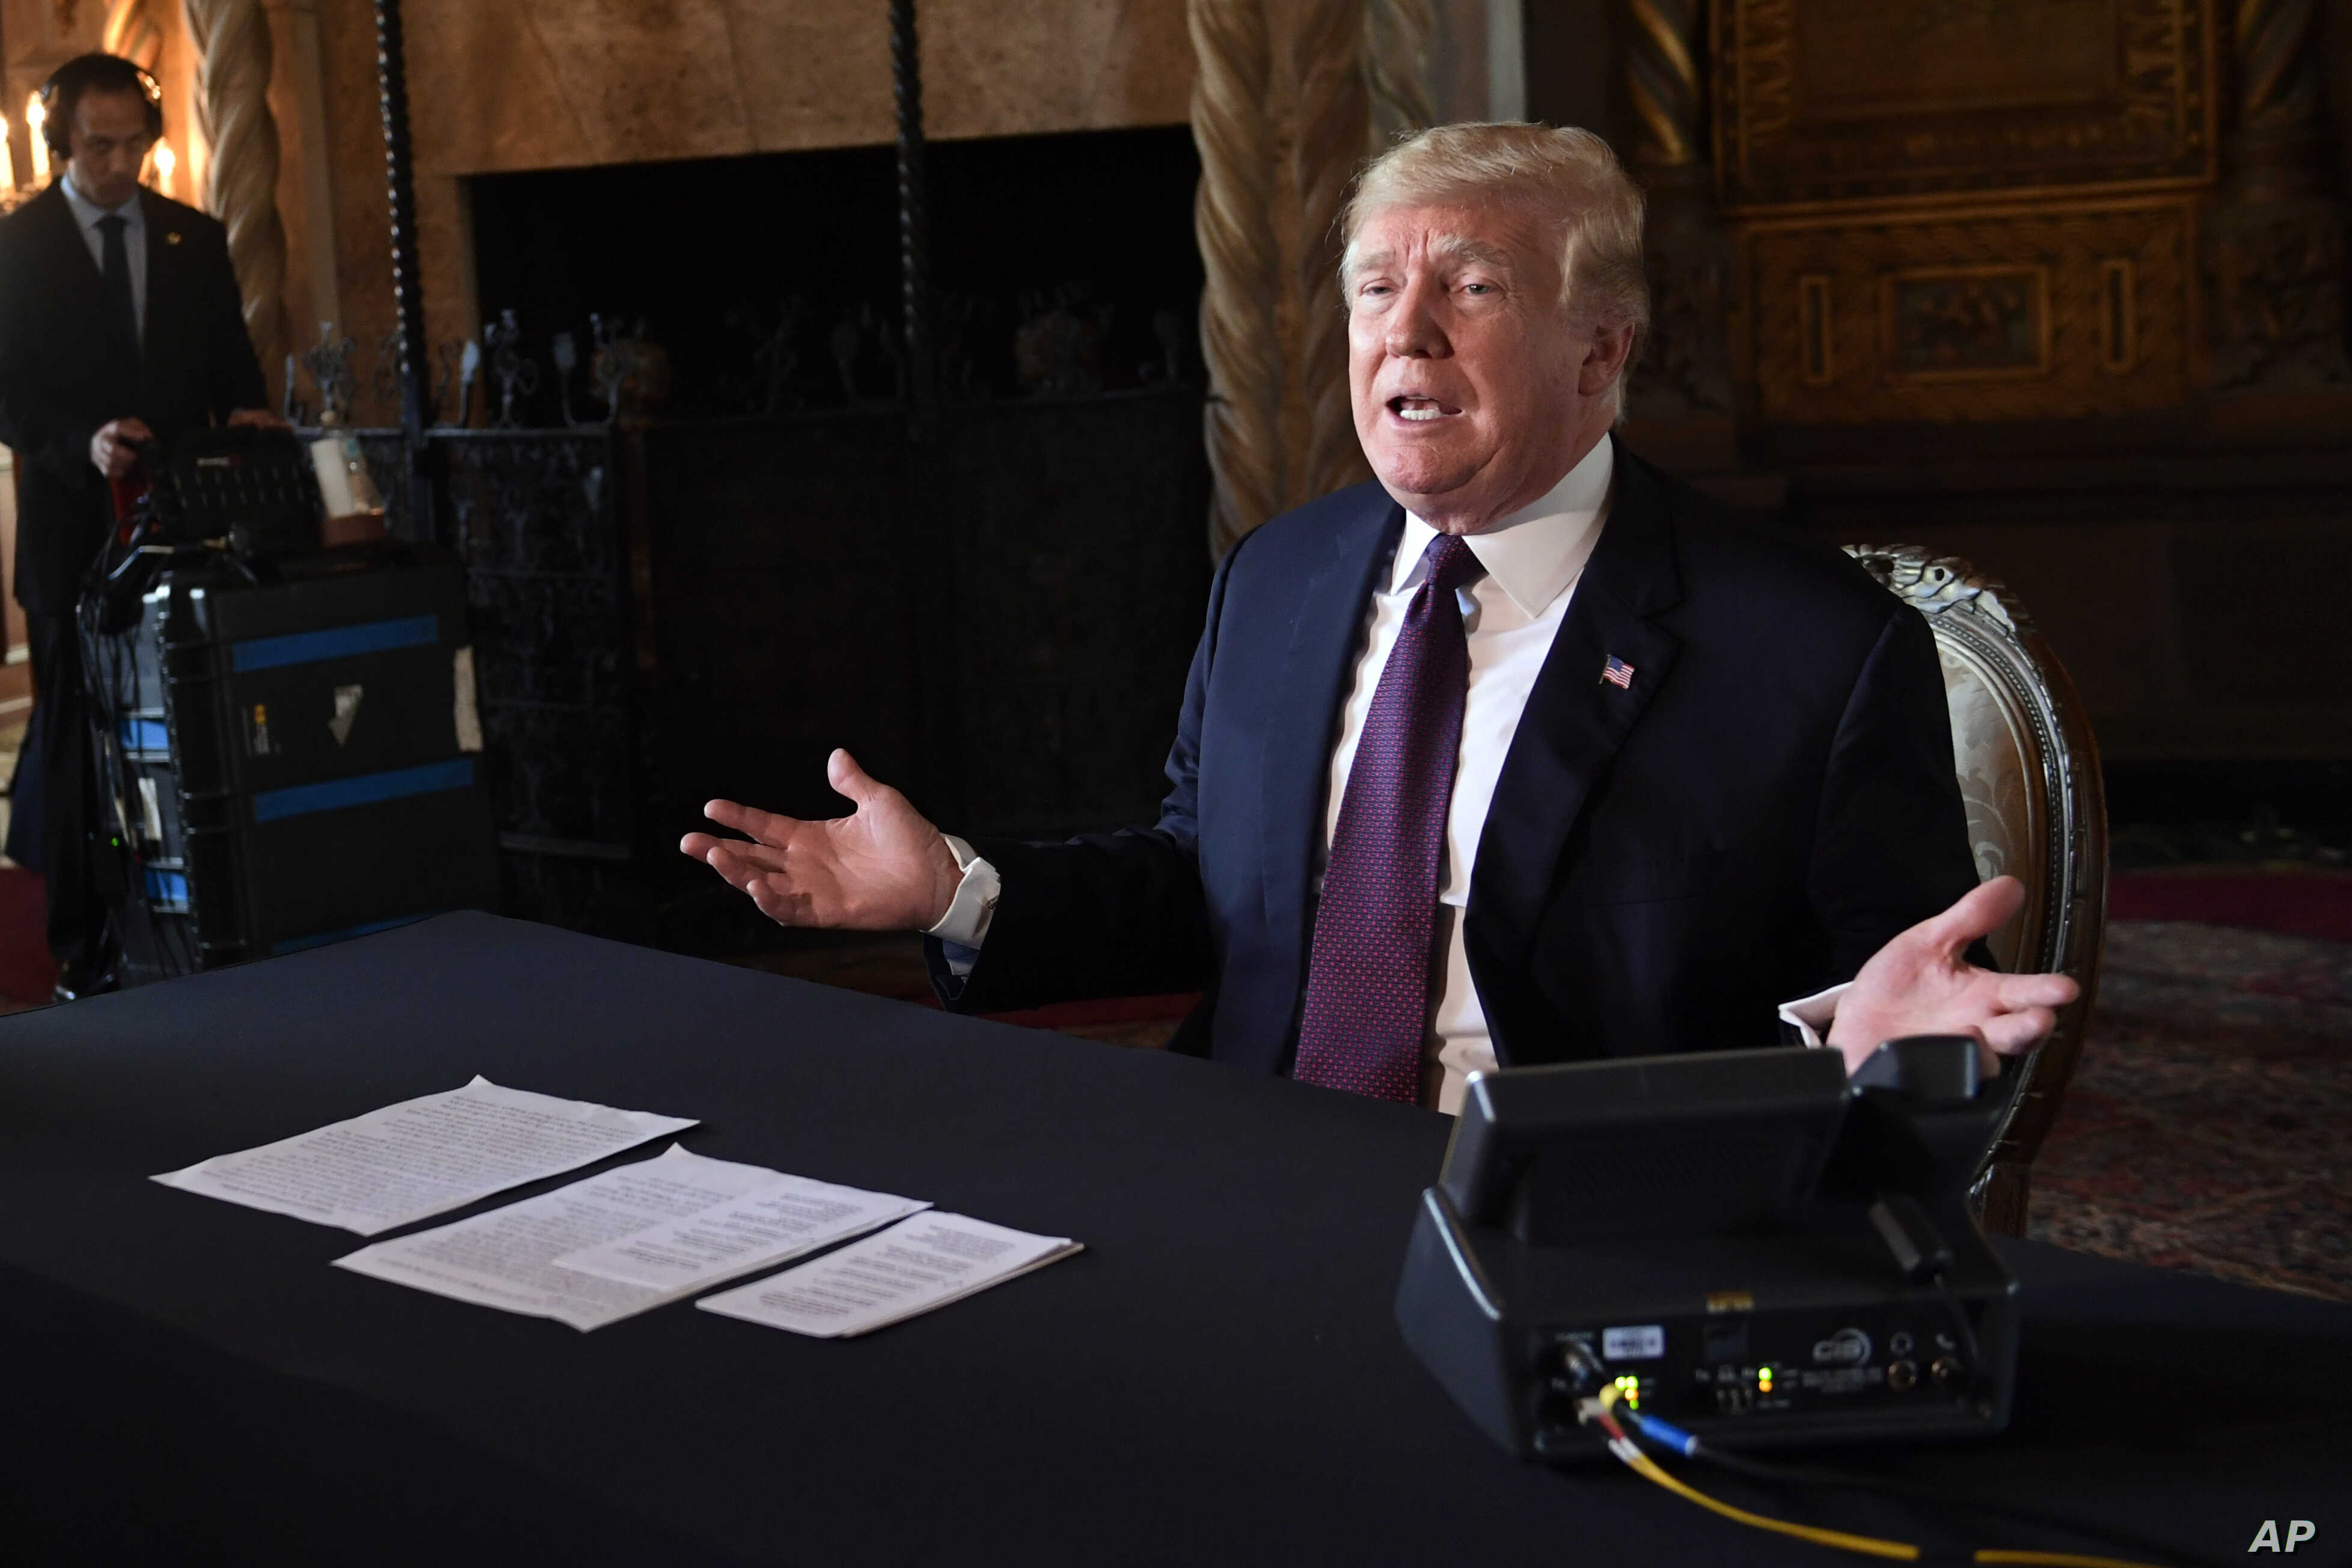 President Donald Trump speaks to reporters following his teleconference with troops from his Mar-a-Lago estate in Palm Beach, Fla., Nov. 22, 2018.